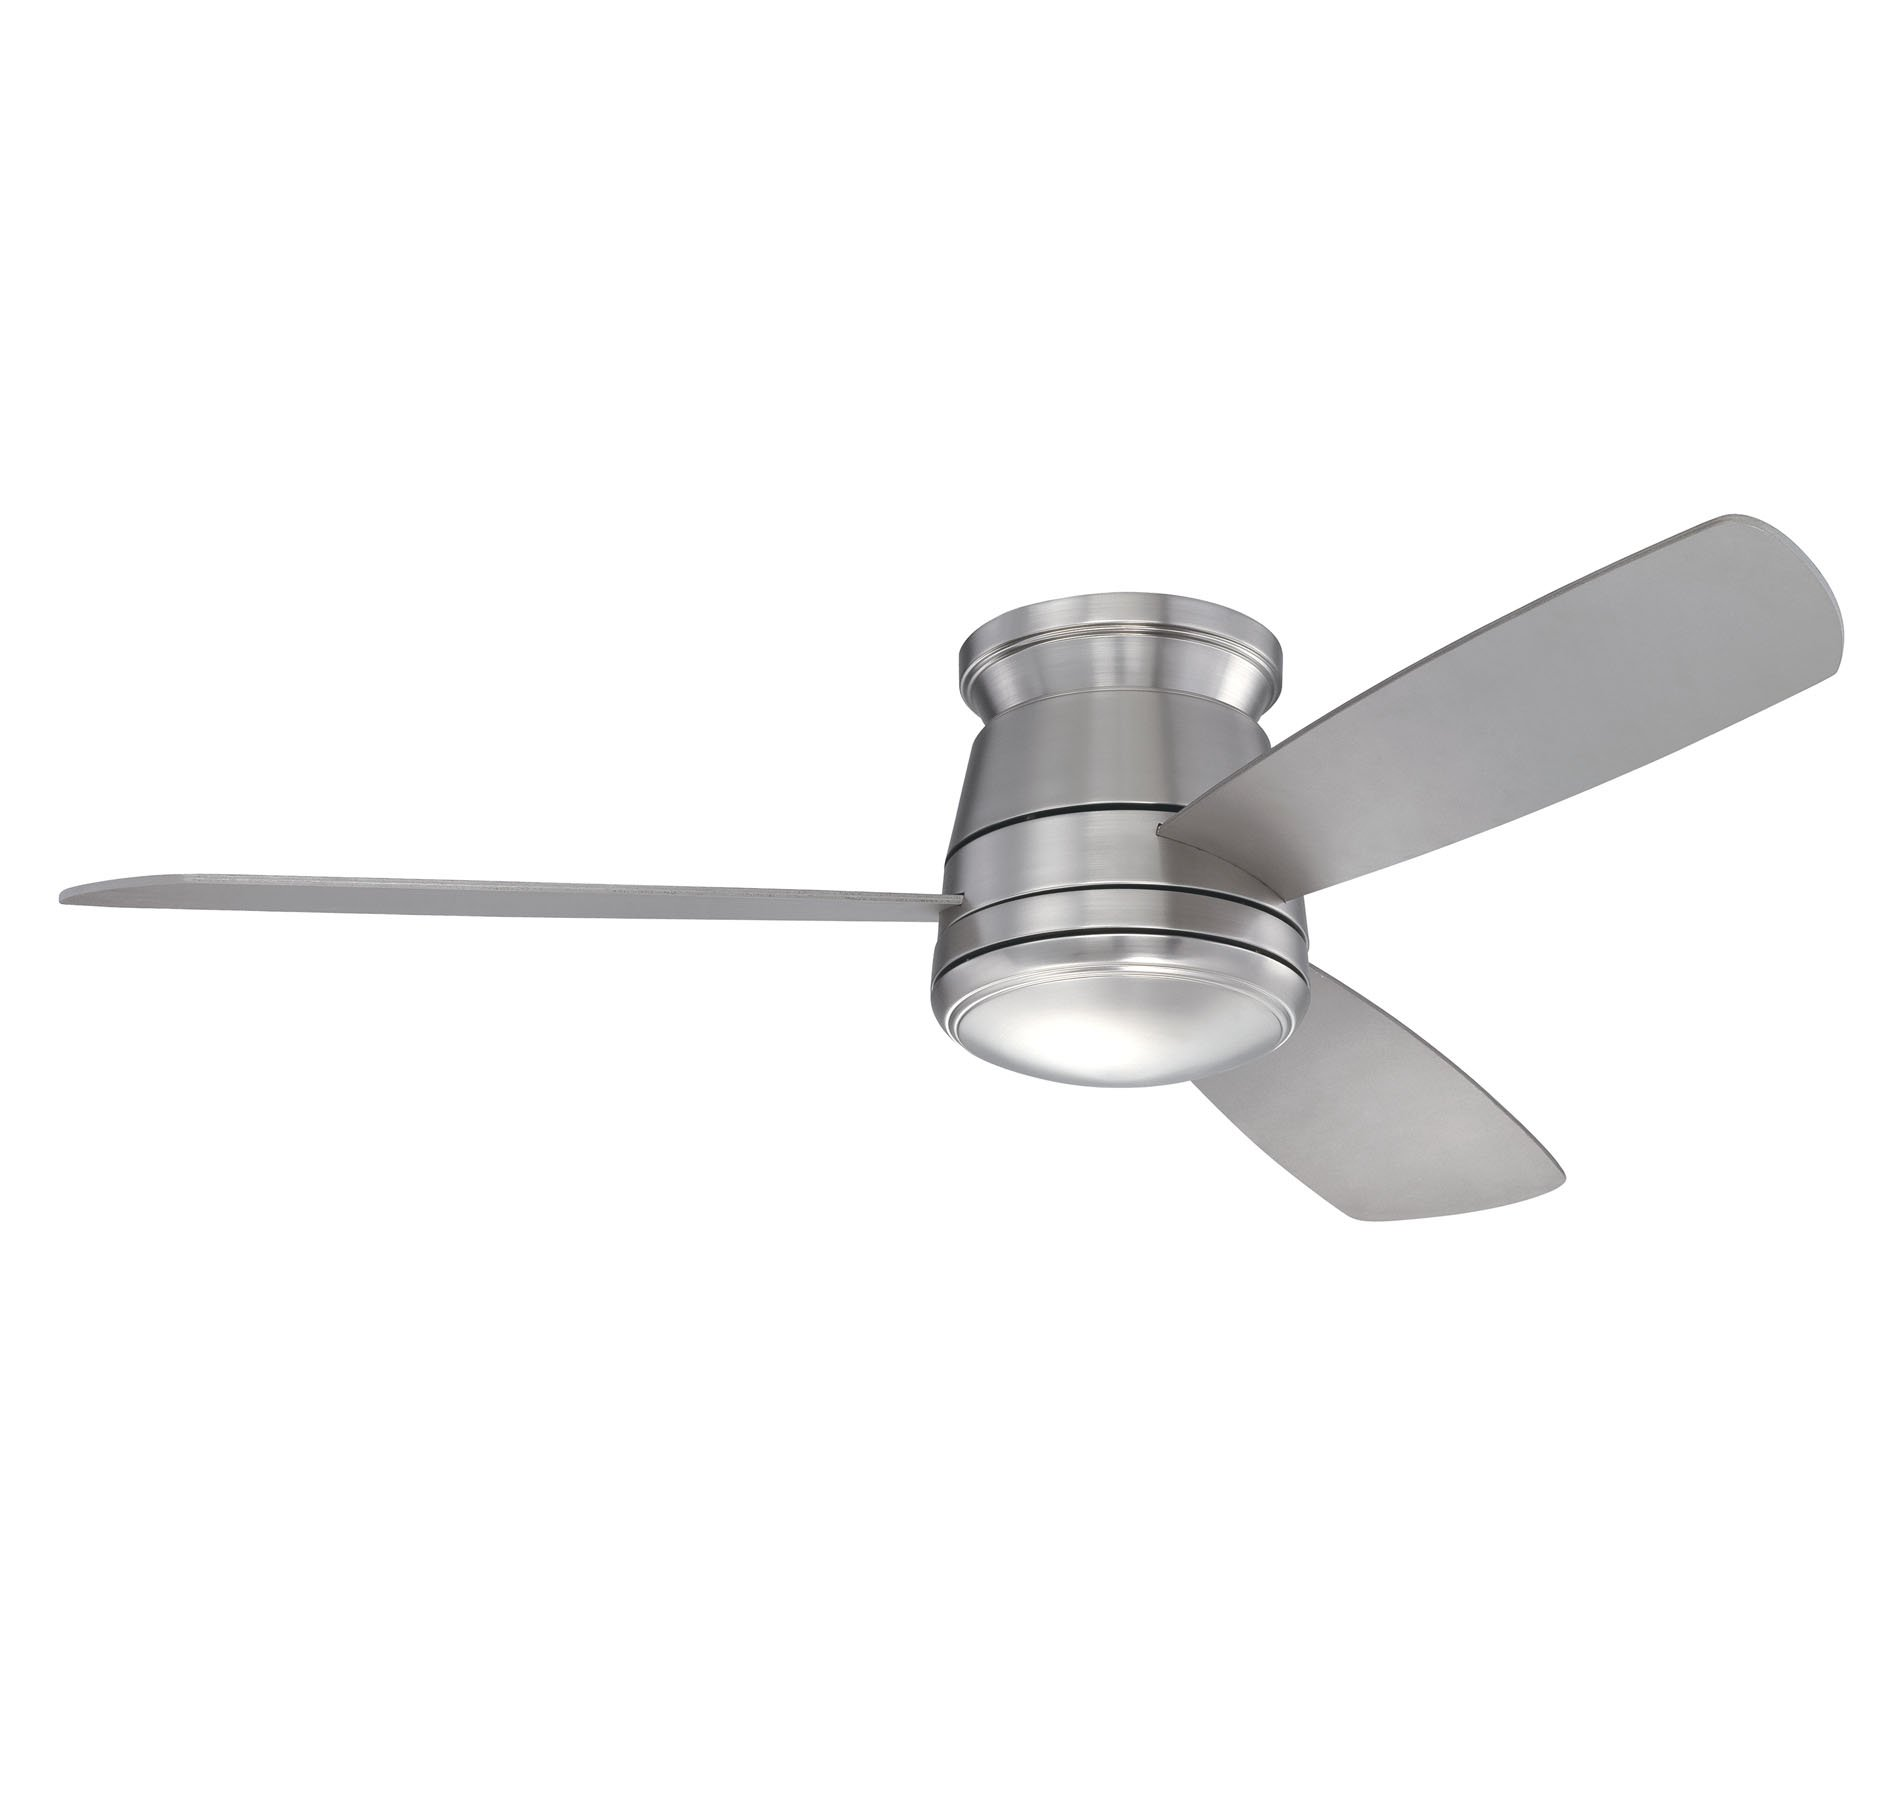 Hugger ceiling fan with light by savoy house 52 417h 3sv sn polaris hugger ceiling fan with light by savoy house 52 417h 3sv sn aloadofball Image collections